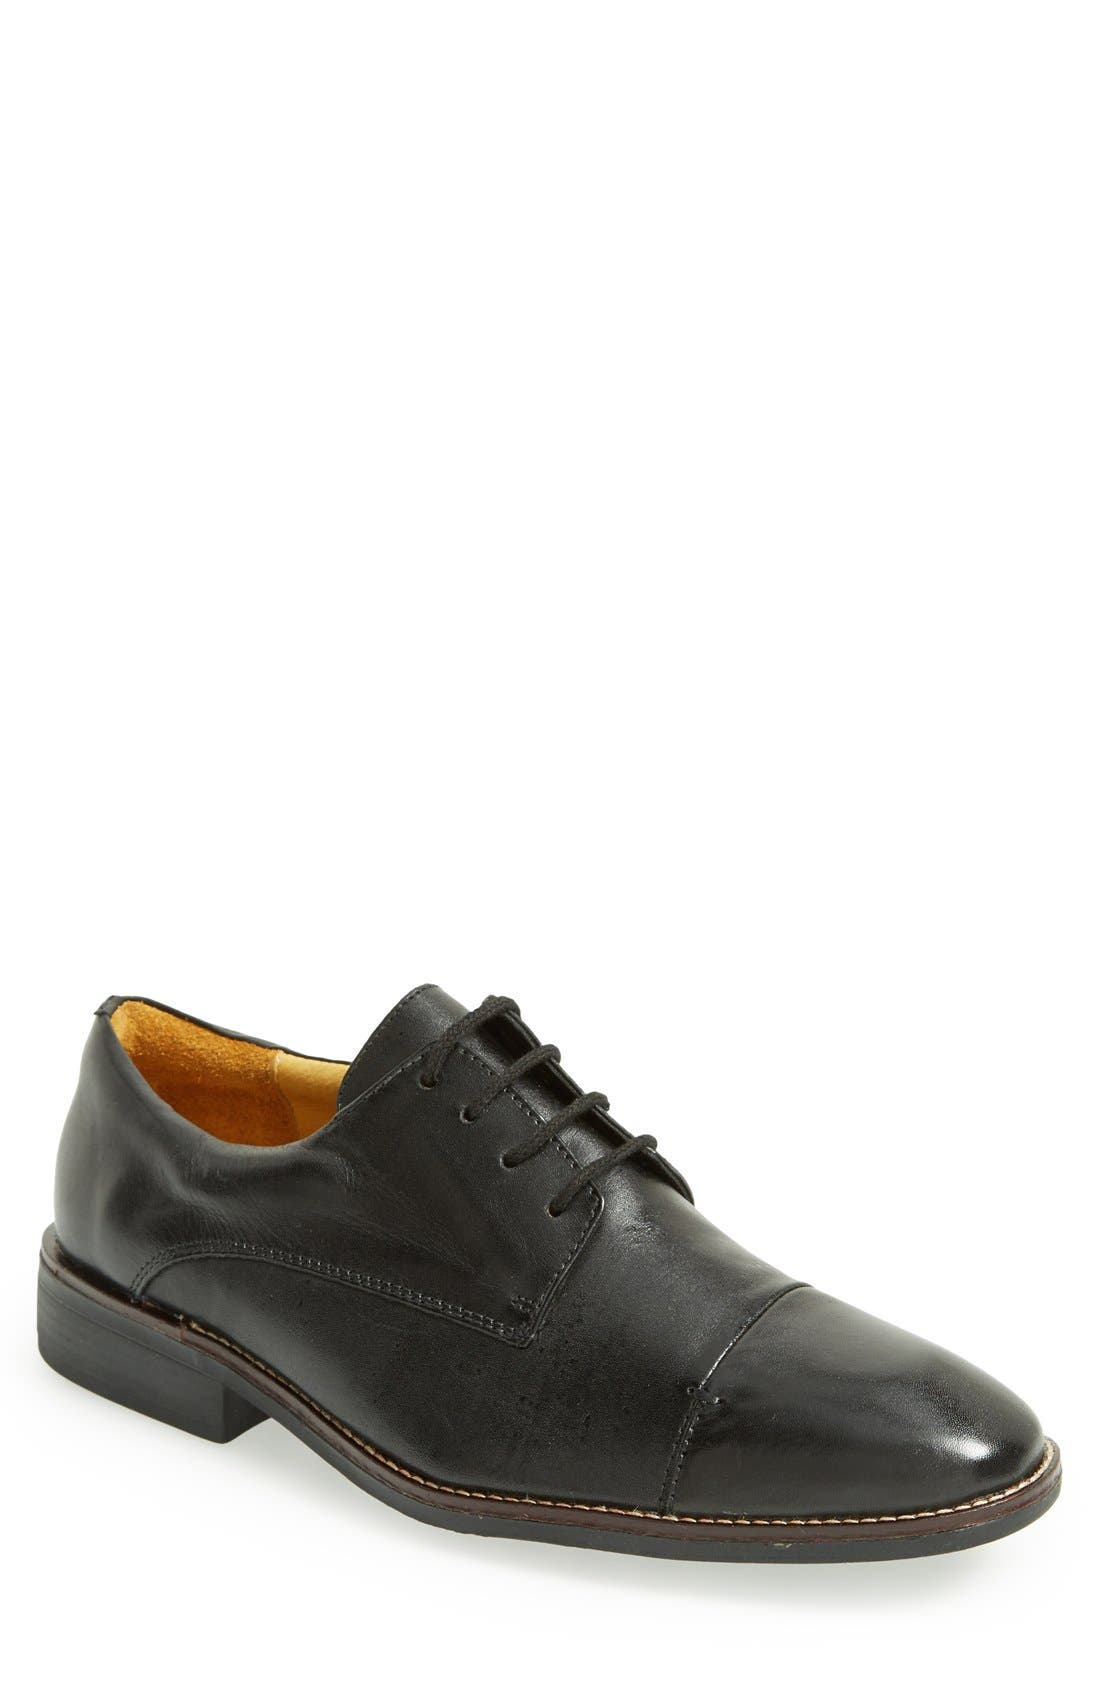 'Irving' Cap Toe Derby,                             Main thumbnail 1, color,                             Black